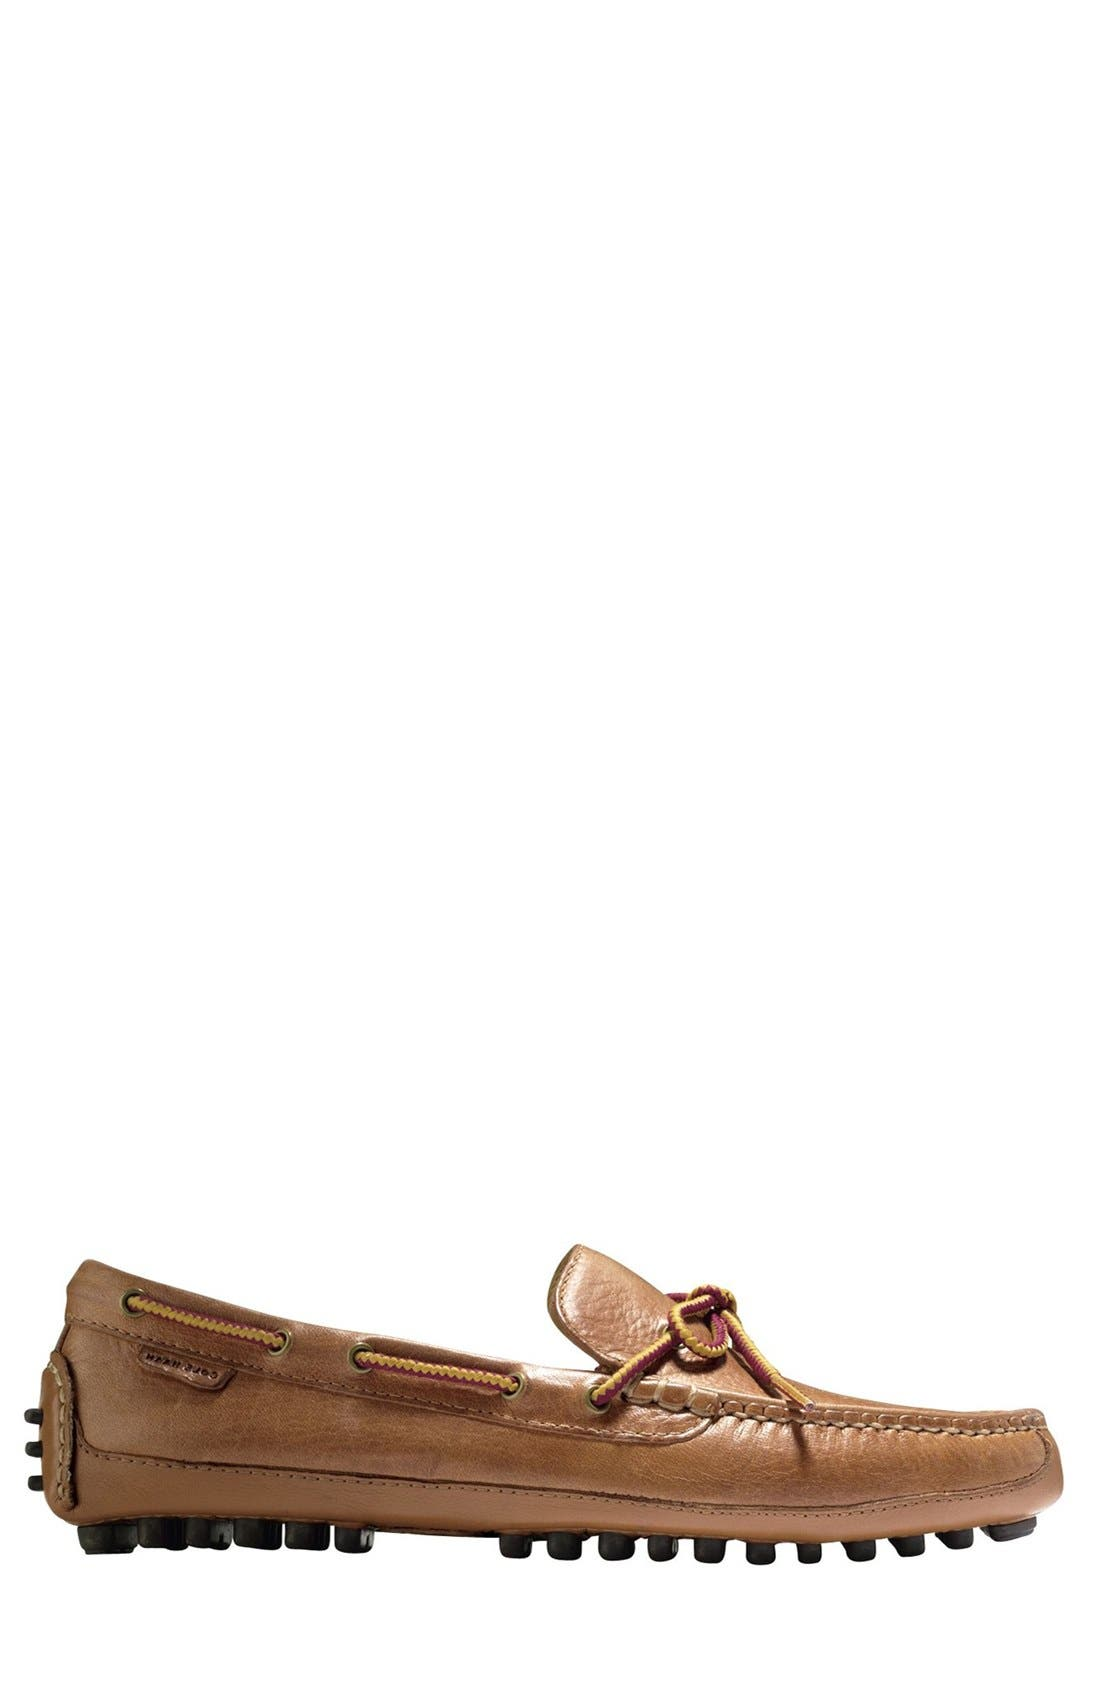 'Grant Canoe Camp' Driving Moccasin,                             Alternate thumbnail 3, color,                             British Tan